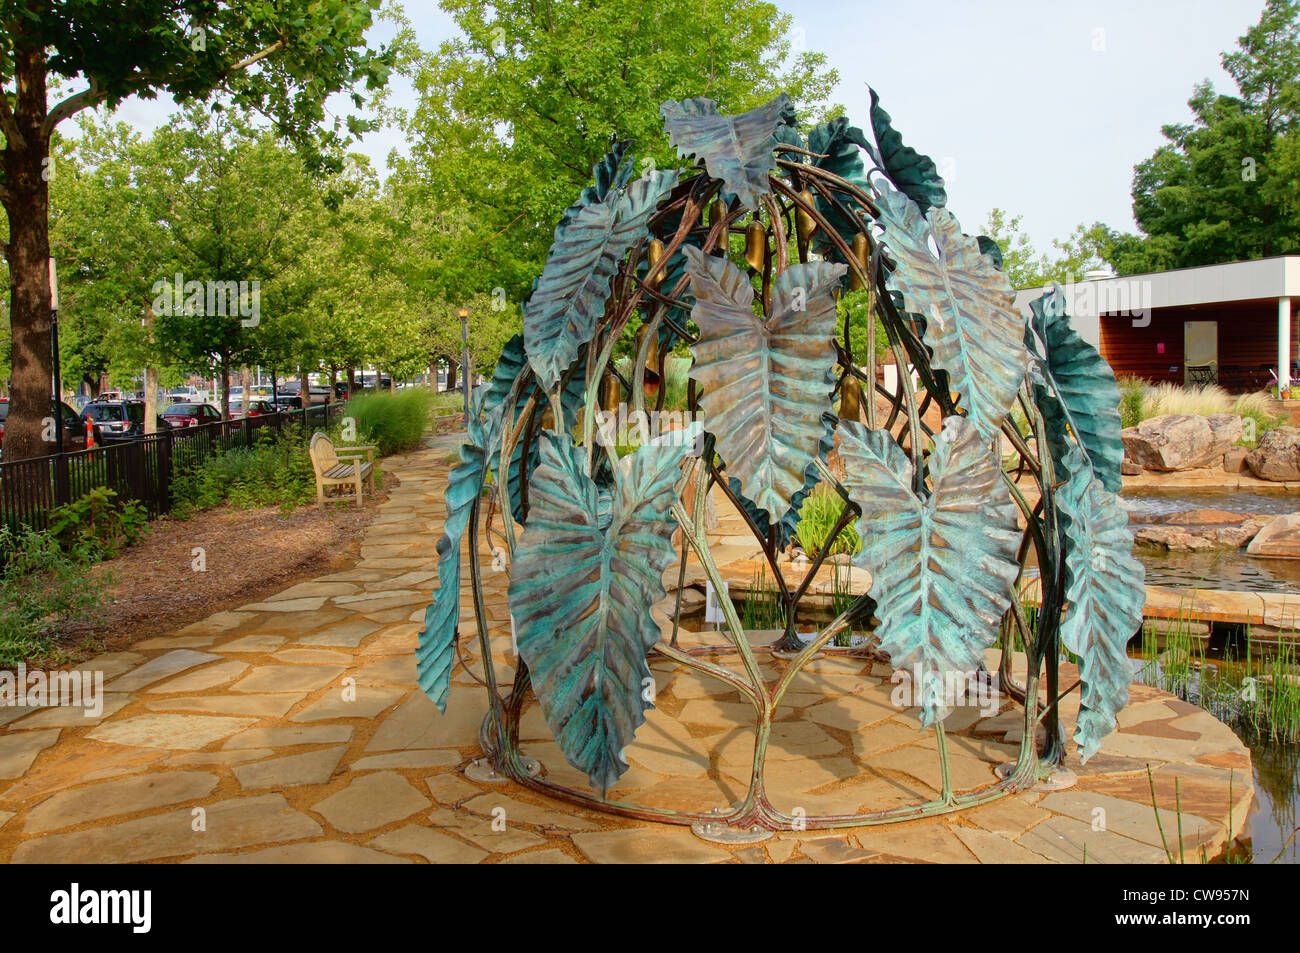 statue sculpture objects graphic design background child kid childrens play park myriad botanical gardens reno - Stock Image